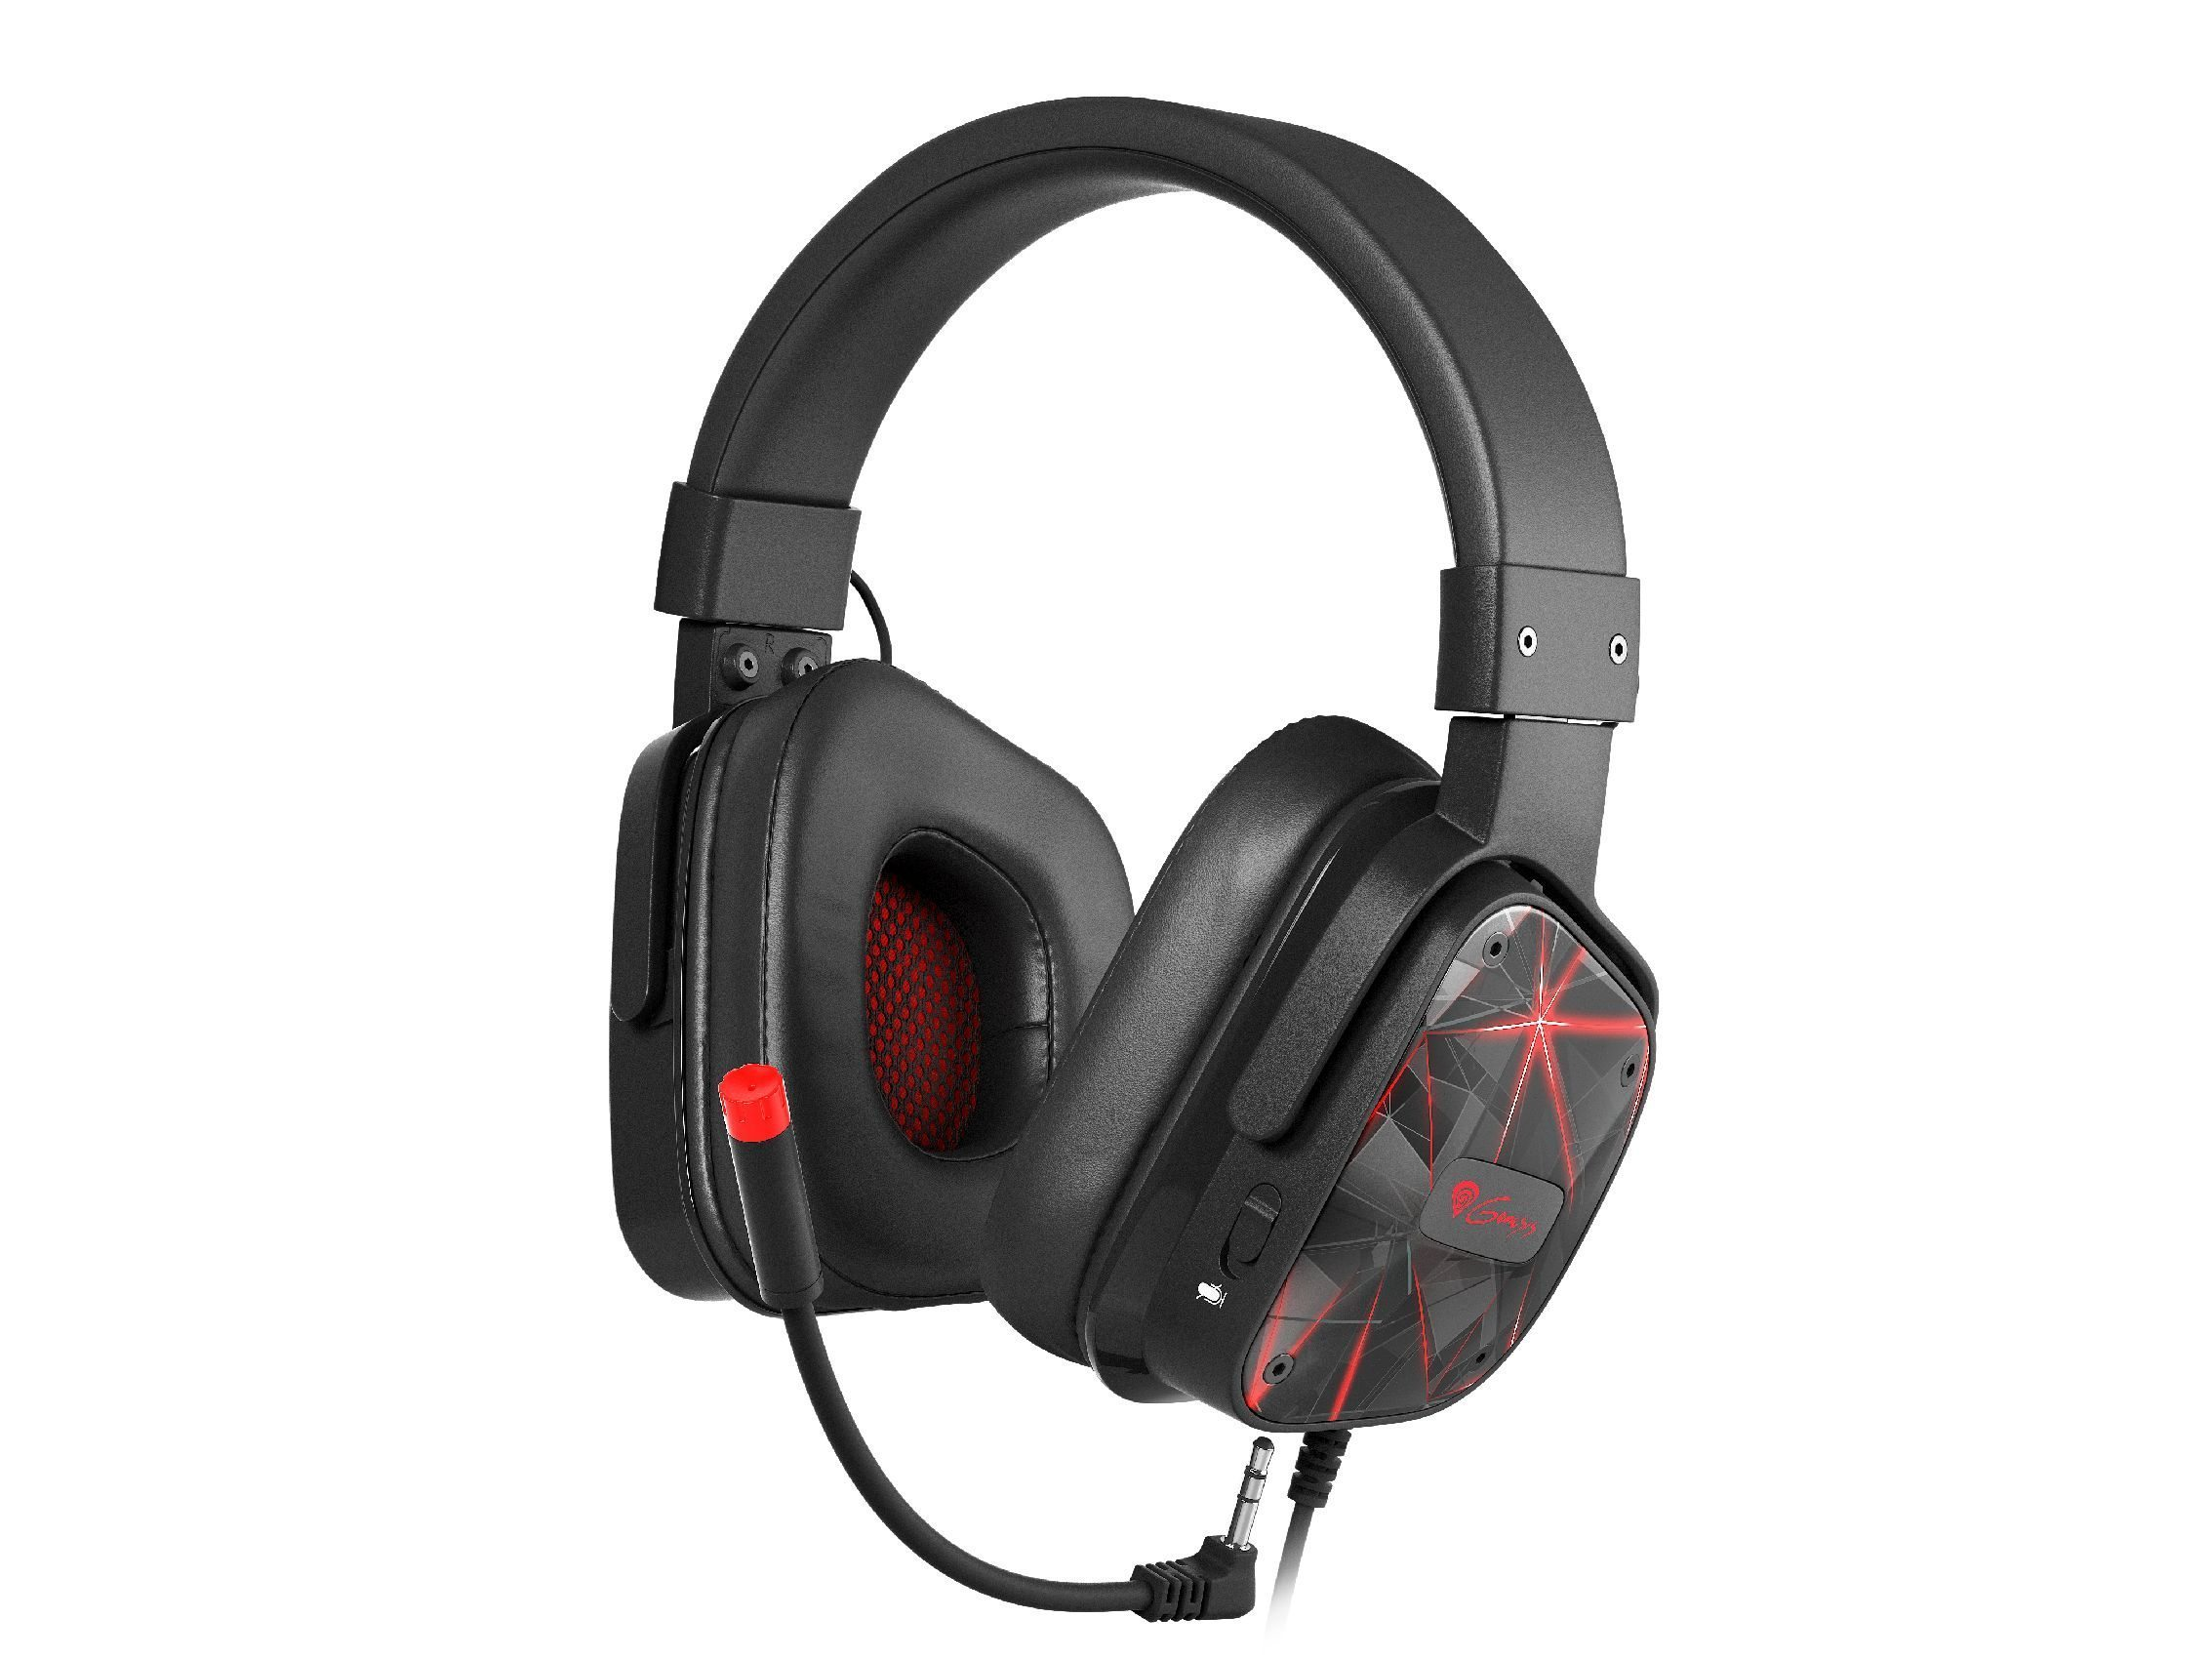 Genesis геймърски слушалки Gaming Headset ARGON 570 STEREO - NSG-0925